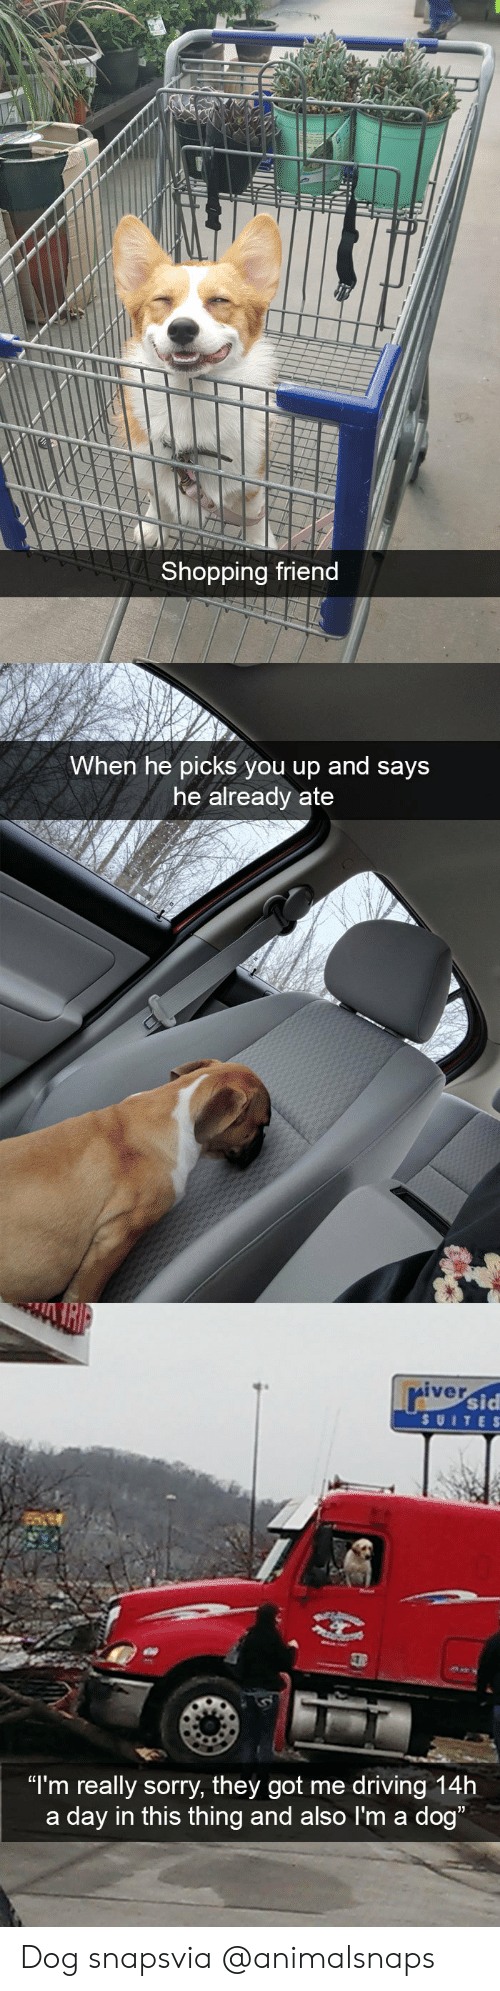 """Driving, Shopping, and Sorry: Shopping friend   When he picks you up and says  he already ate   iver  sid  SUITE S  """"I'm really sorry, they got me driving 14h  a day in this thing and also I'm a dog Dog snapsvia @animalsnaps"""